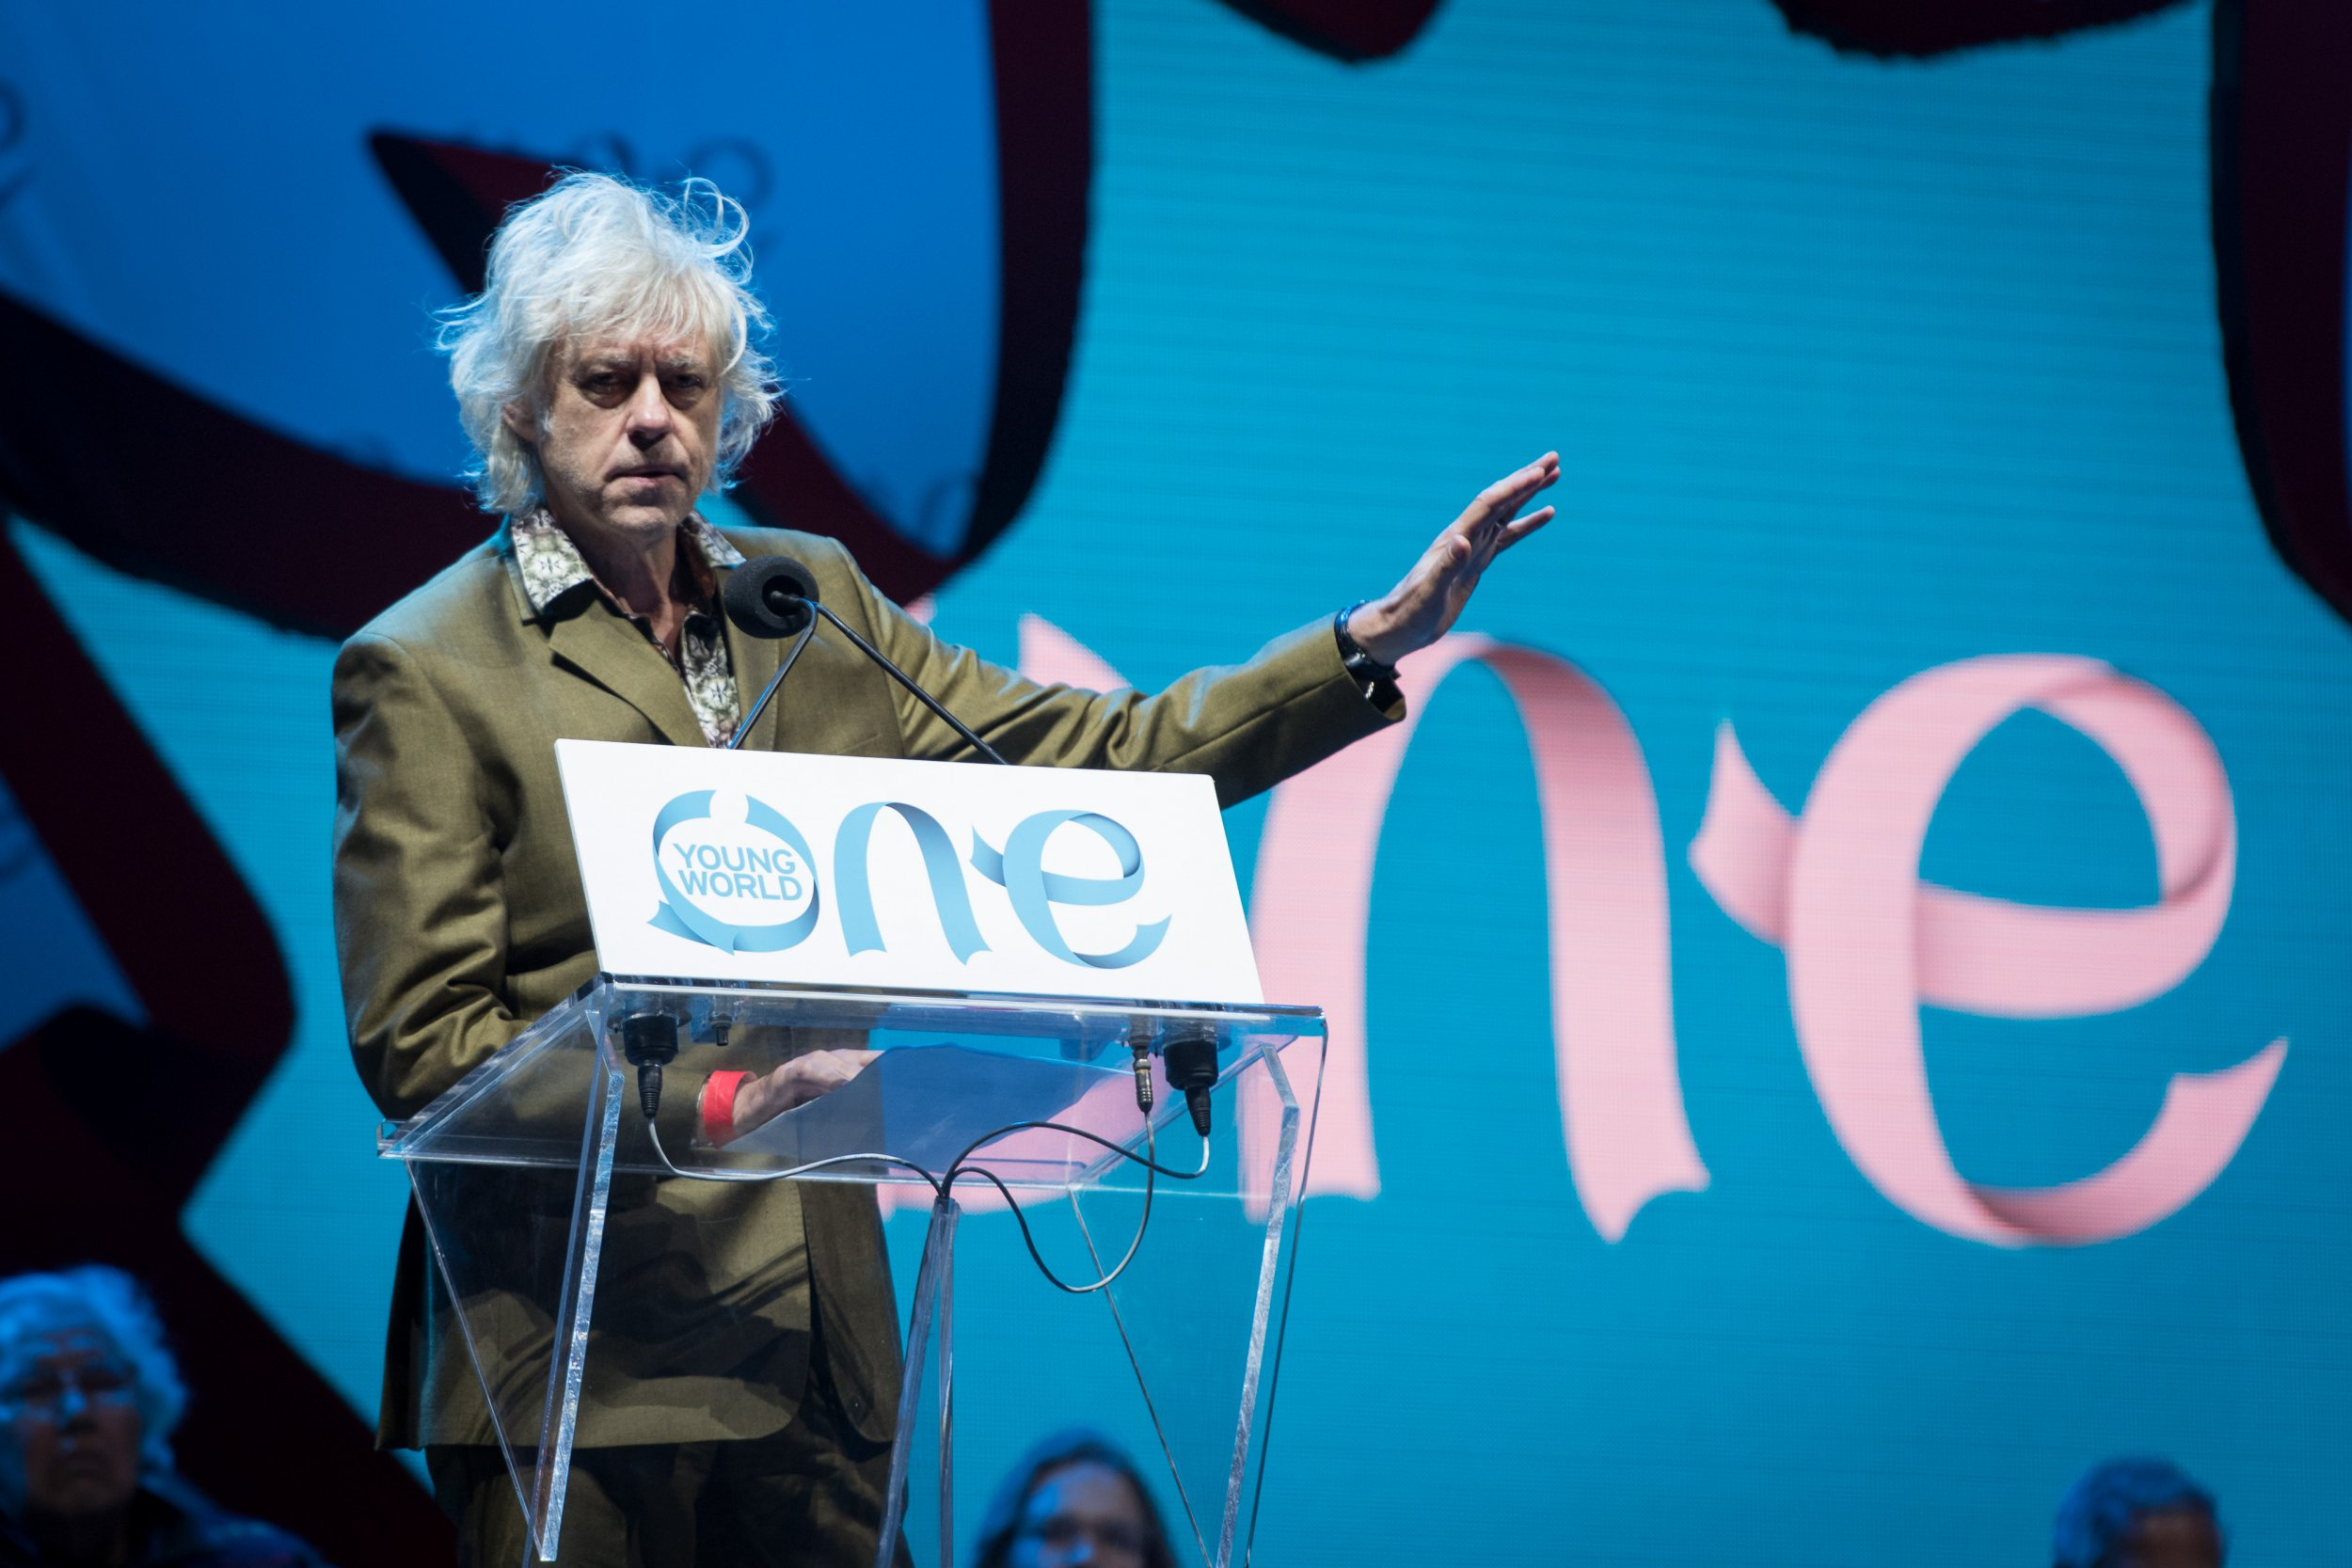 Bob Geldof Speaks at One Young World 2016[1]